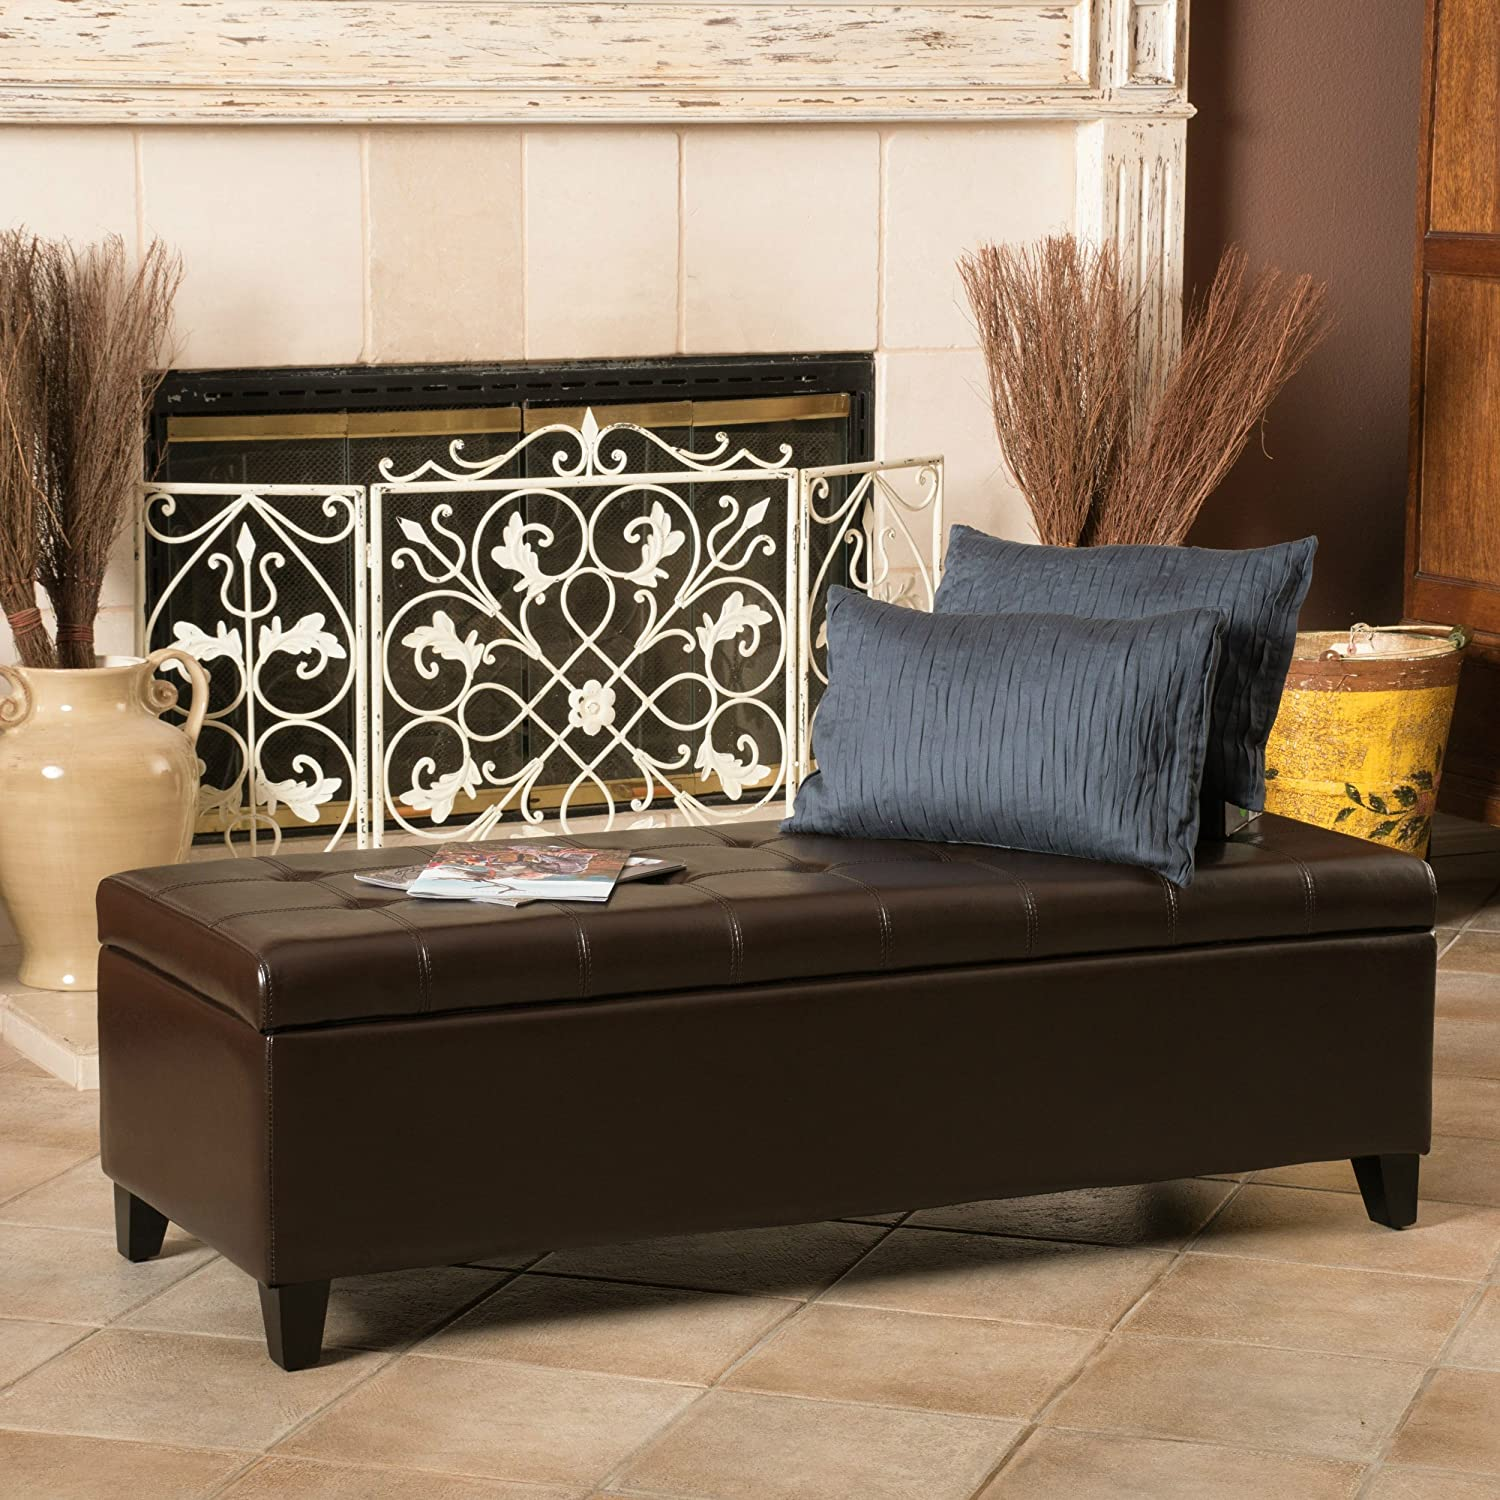 Fantastic Amazon Com Ensuma Tufted Storage Leather Ottoman Bench Andrewgaddart Wooden Chair Designs For Living Room Andrewgaddartcom